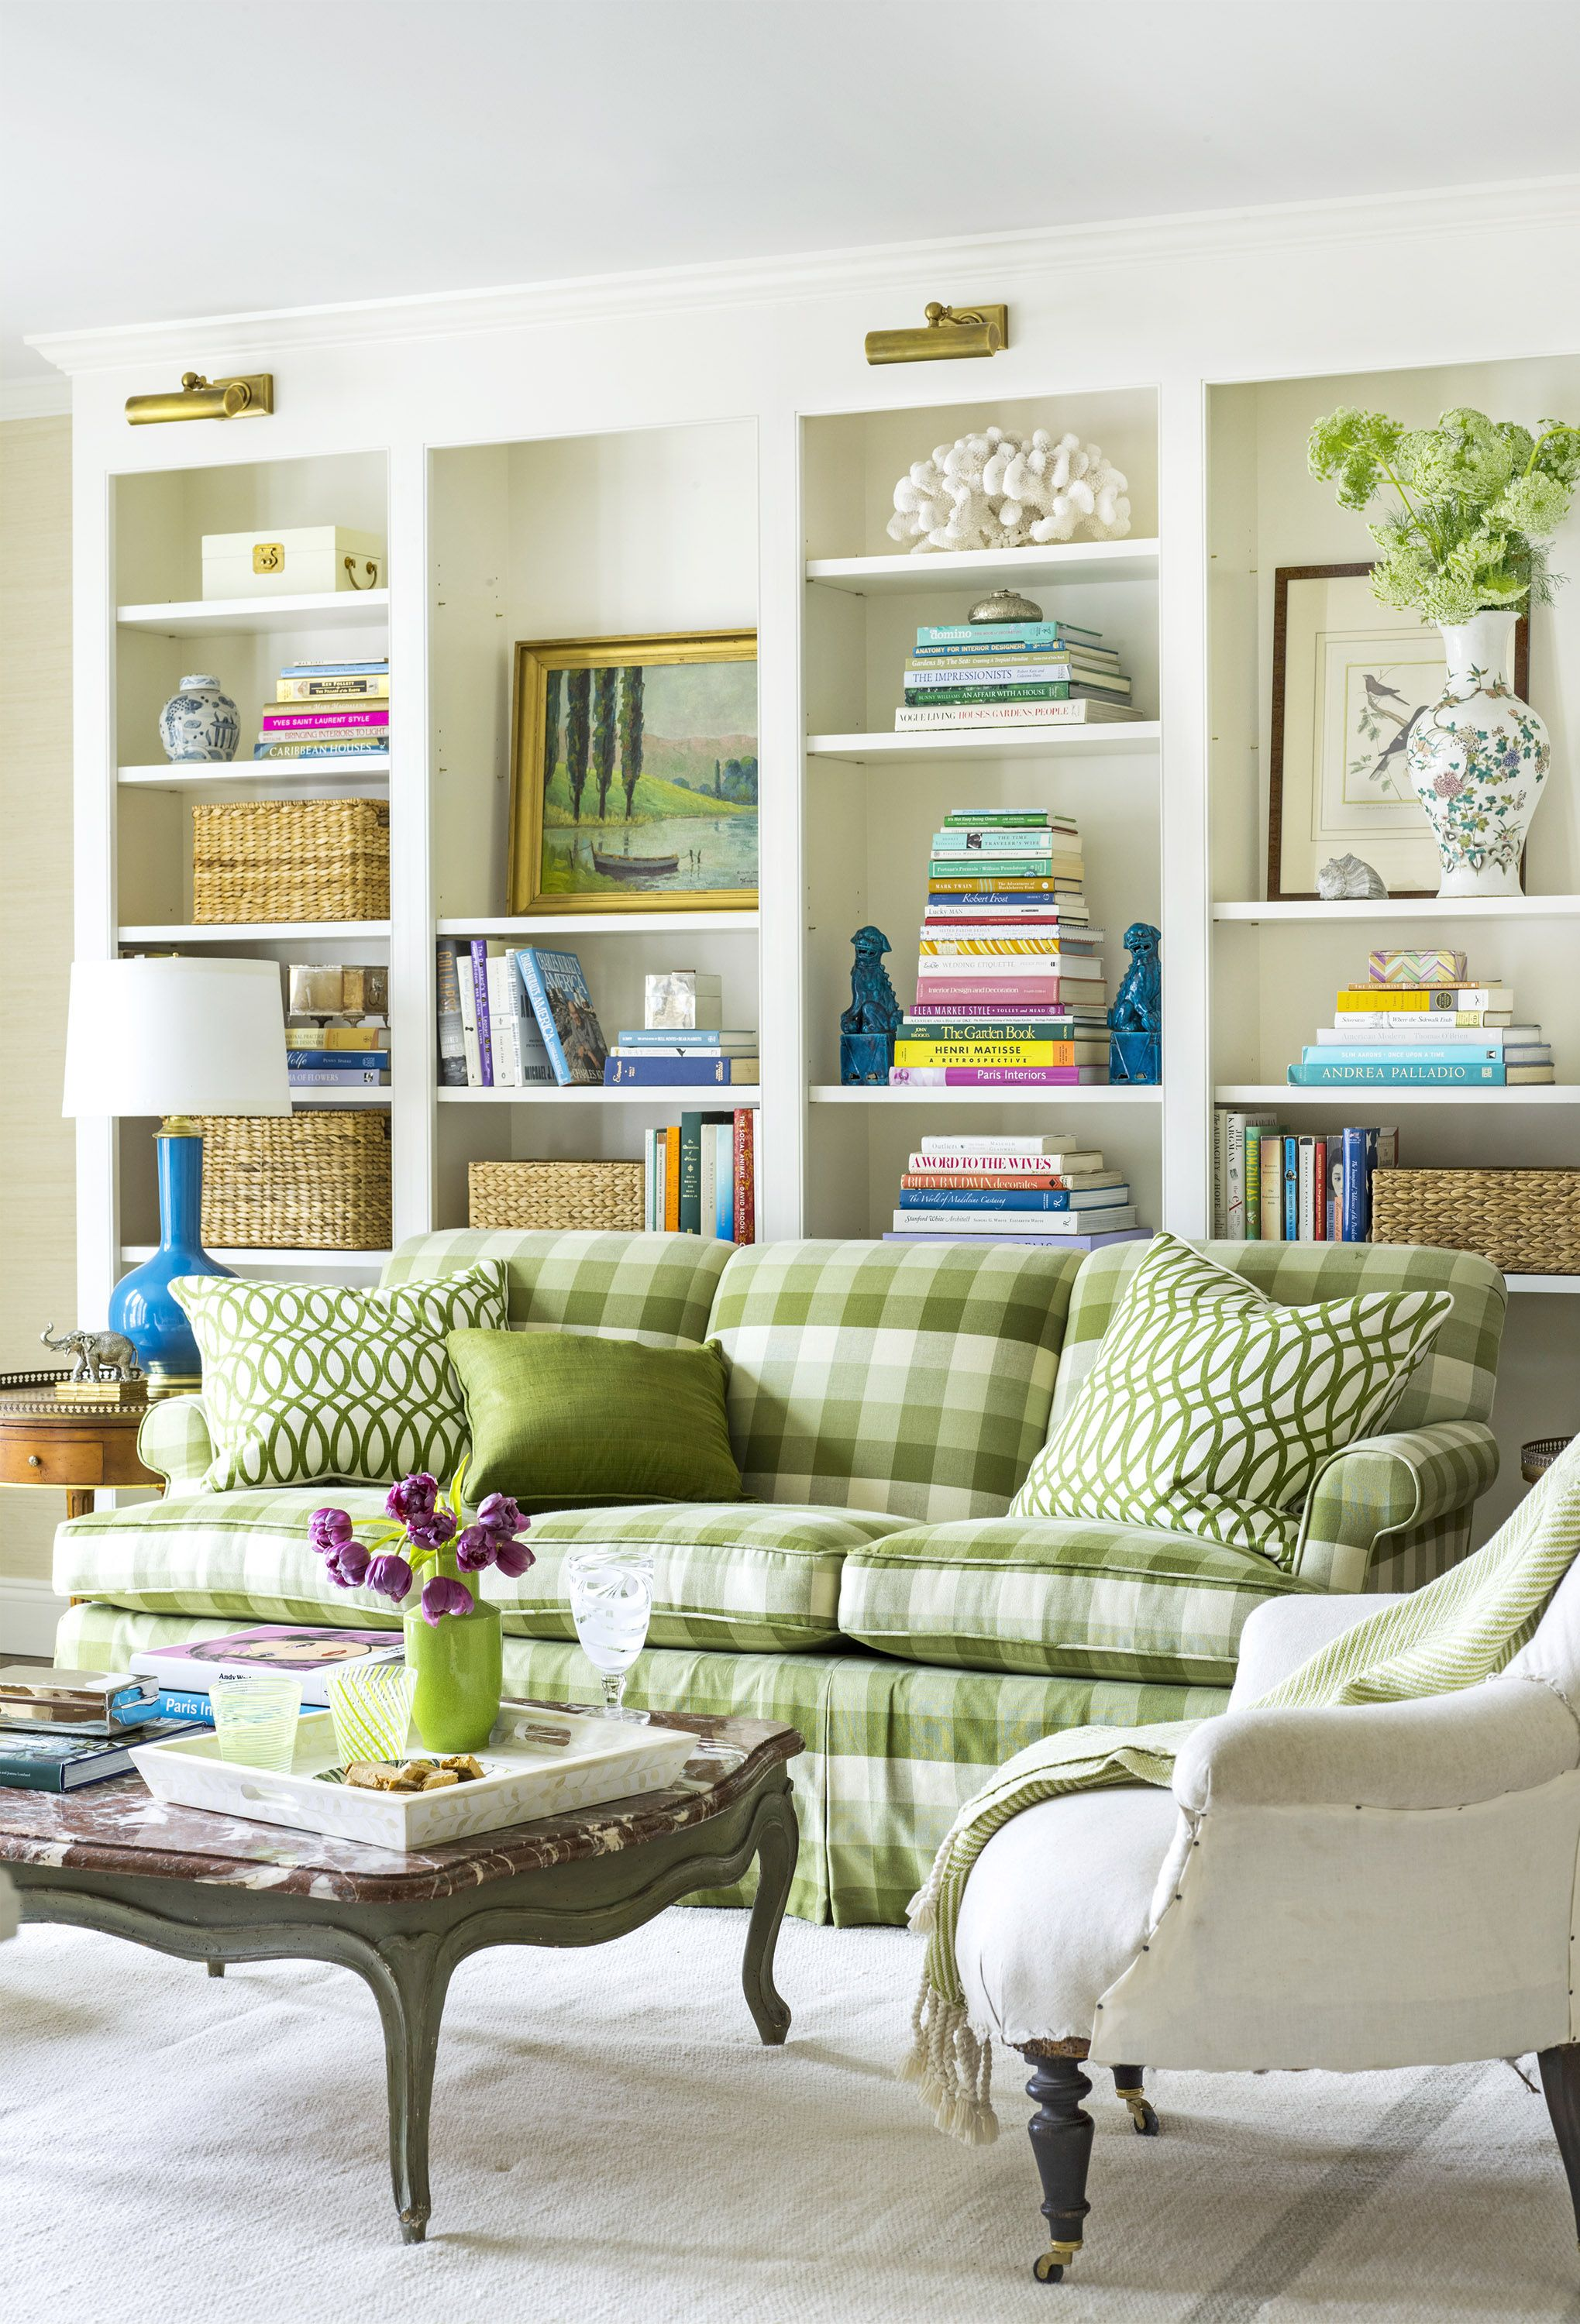 Decorating with Green 43 Ideas